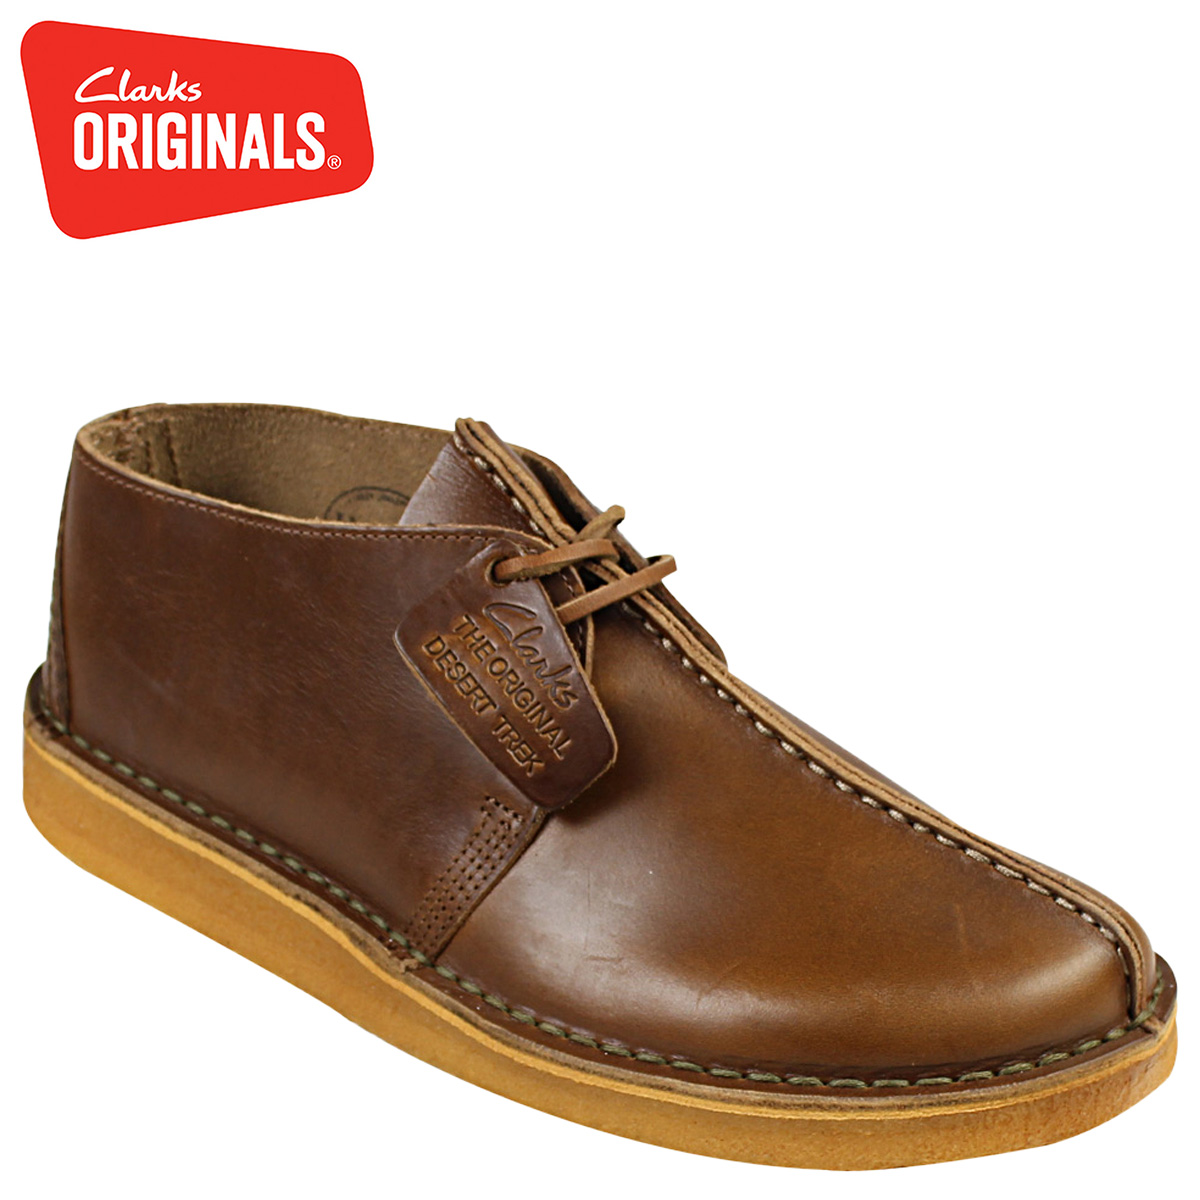 a56dd945a8dff Whats Up Sports Sold Out Kulaki Originals Clarks